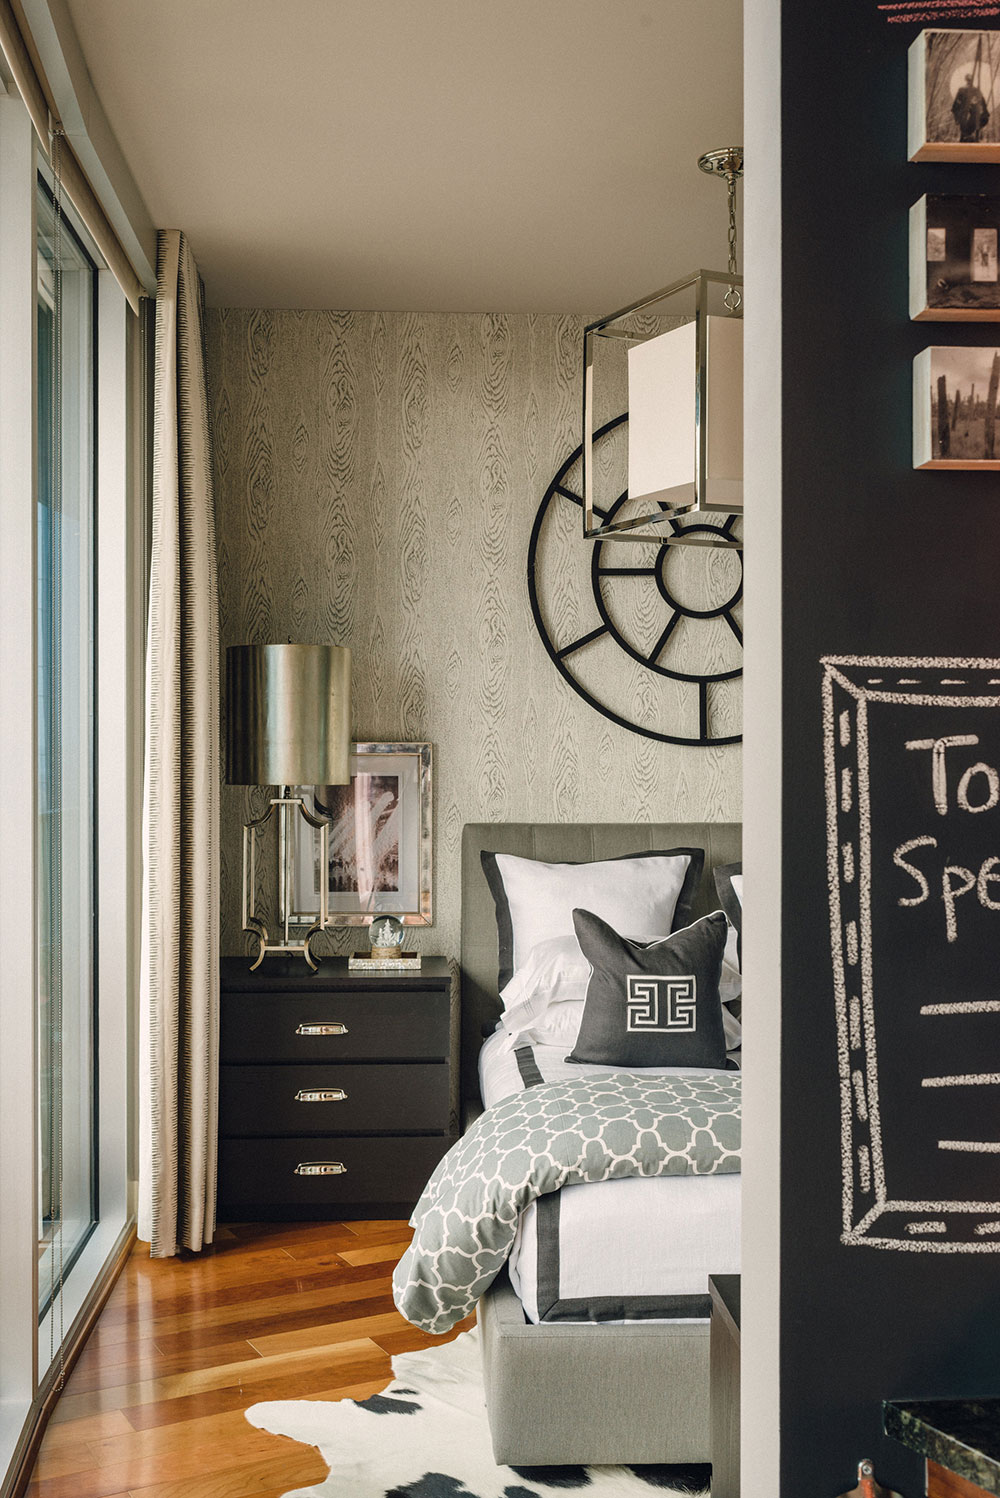 8 Decorating Mistakes to Avoid in a Studio Apartment | Real ...